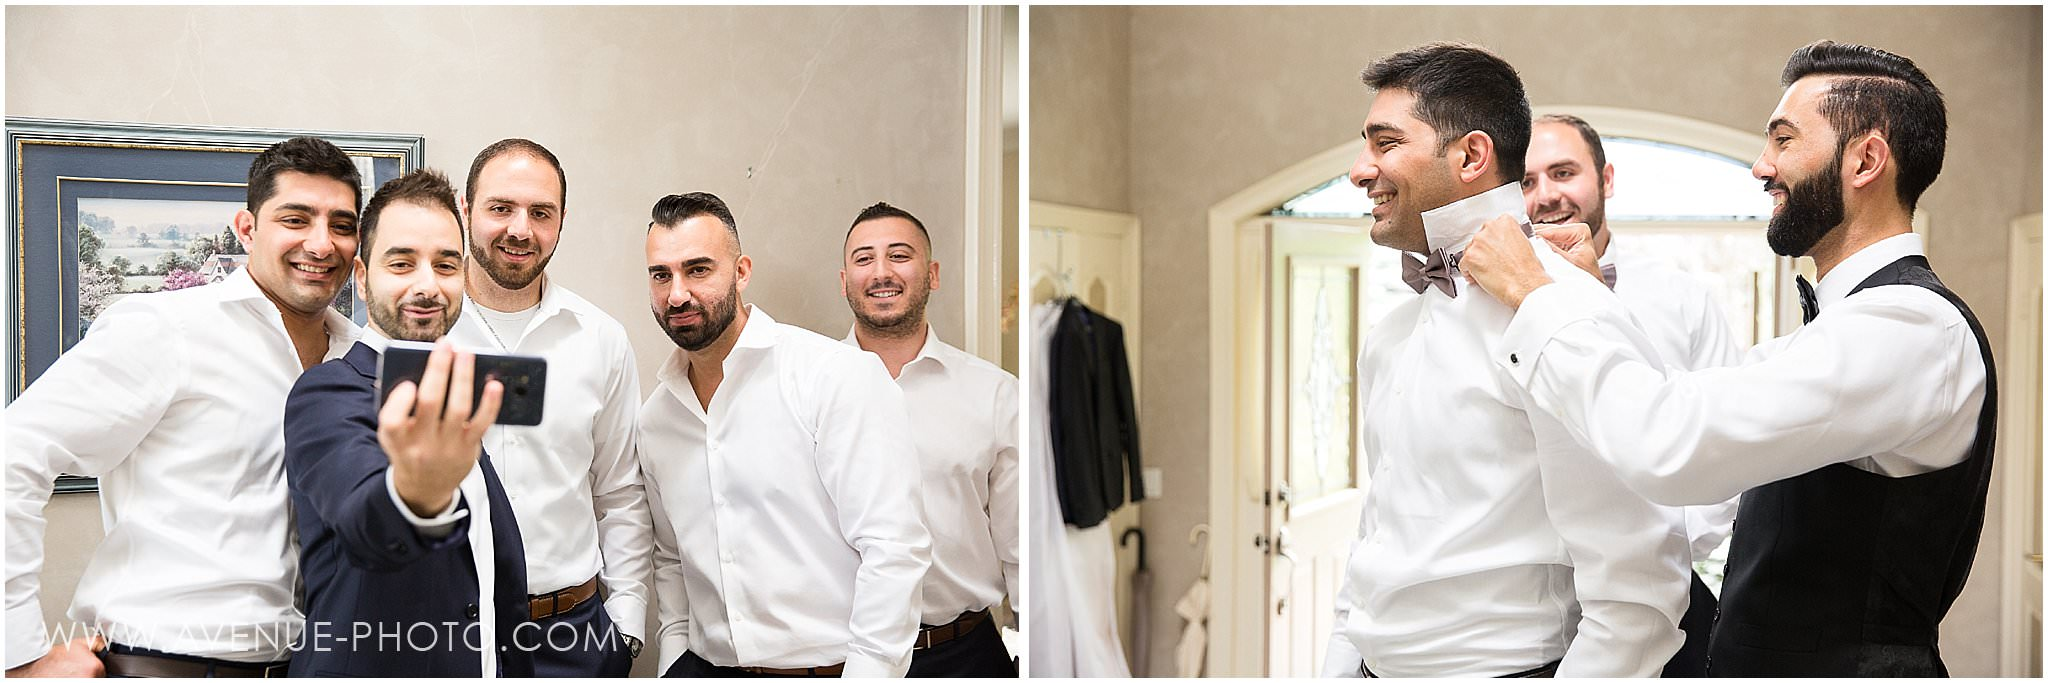 Hazelton Manor Wedding photos, Avenue photo, Groom and Groomsman getting ready